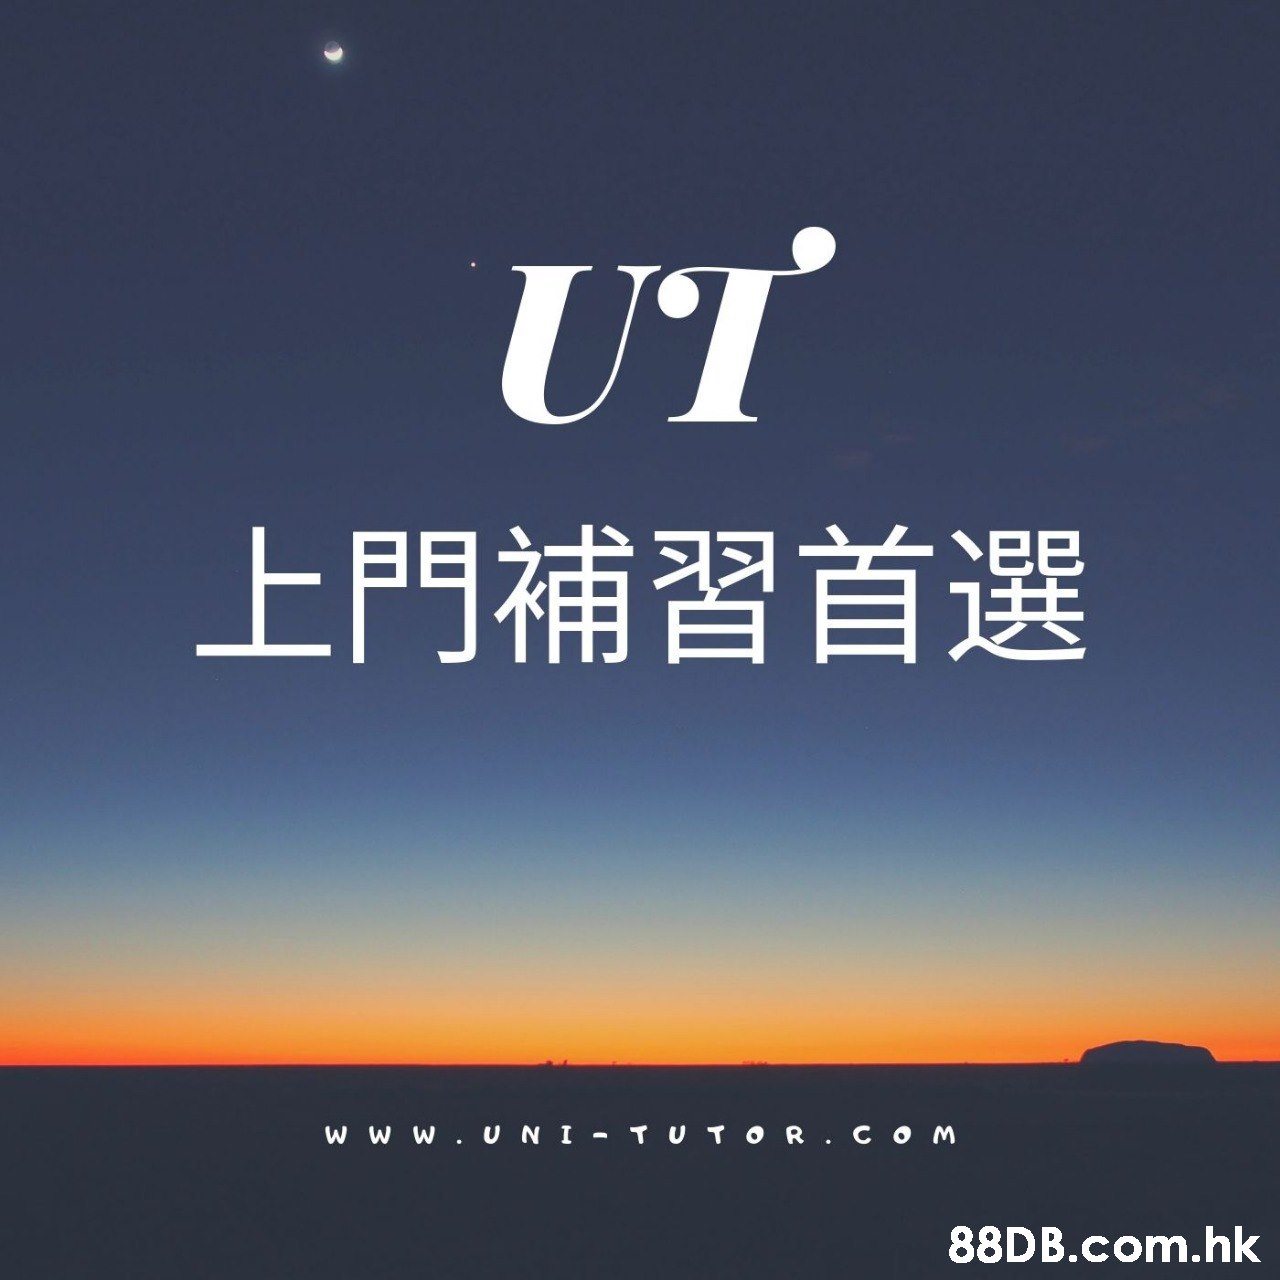 UT 上門補習首選 ee w W W. UNI-TUTOR. COM .hk  Sky,Font,Text,Horizon,Atmosphere